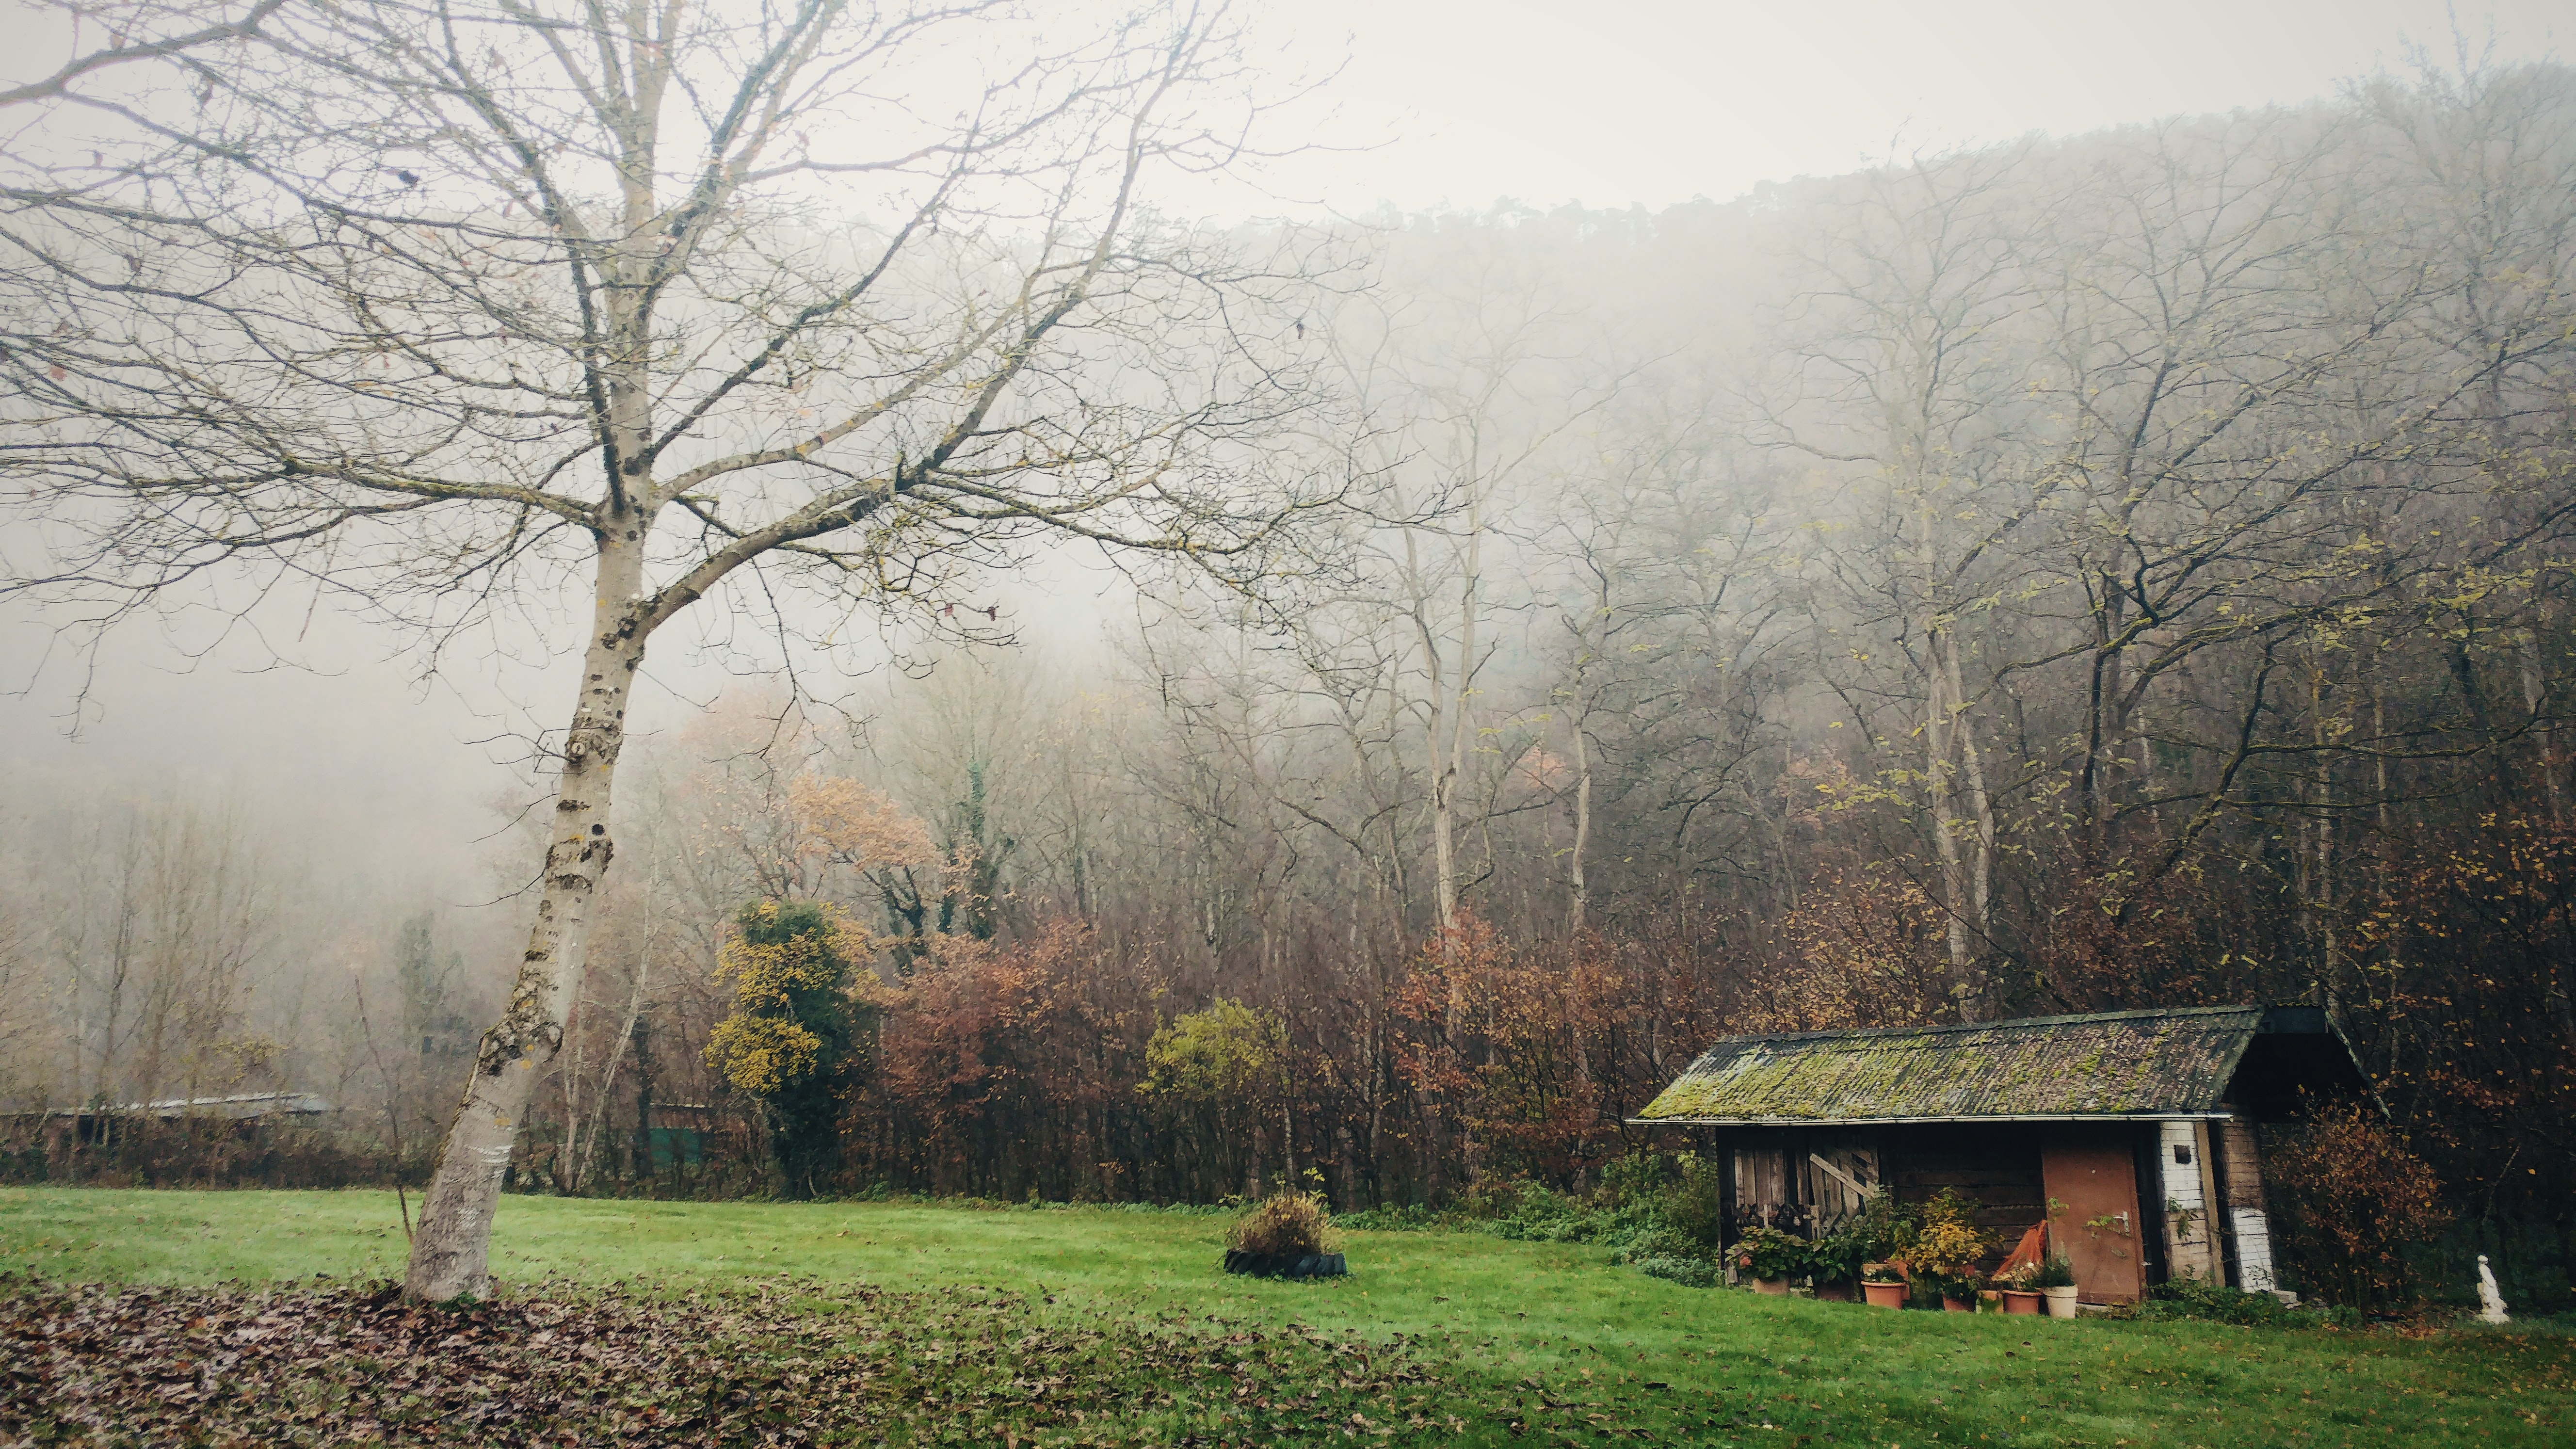 house surrounded by leafless trees and covered by fogs